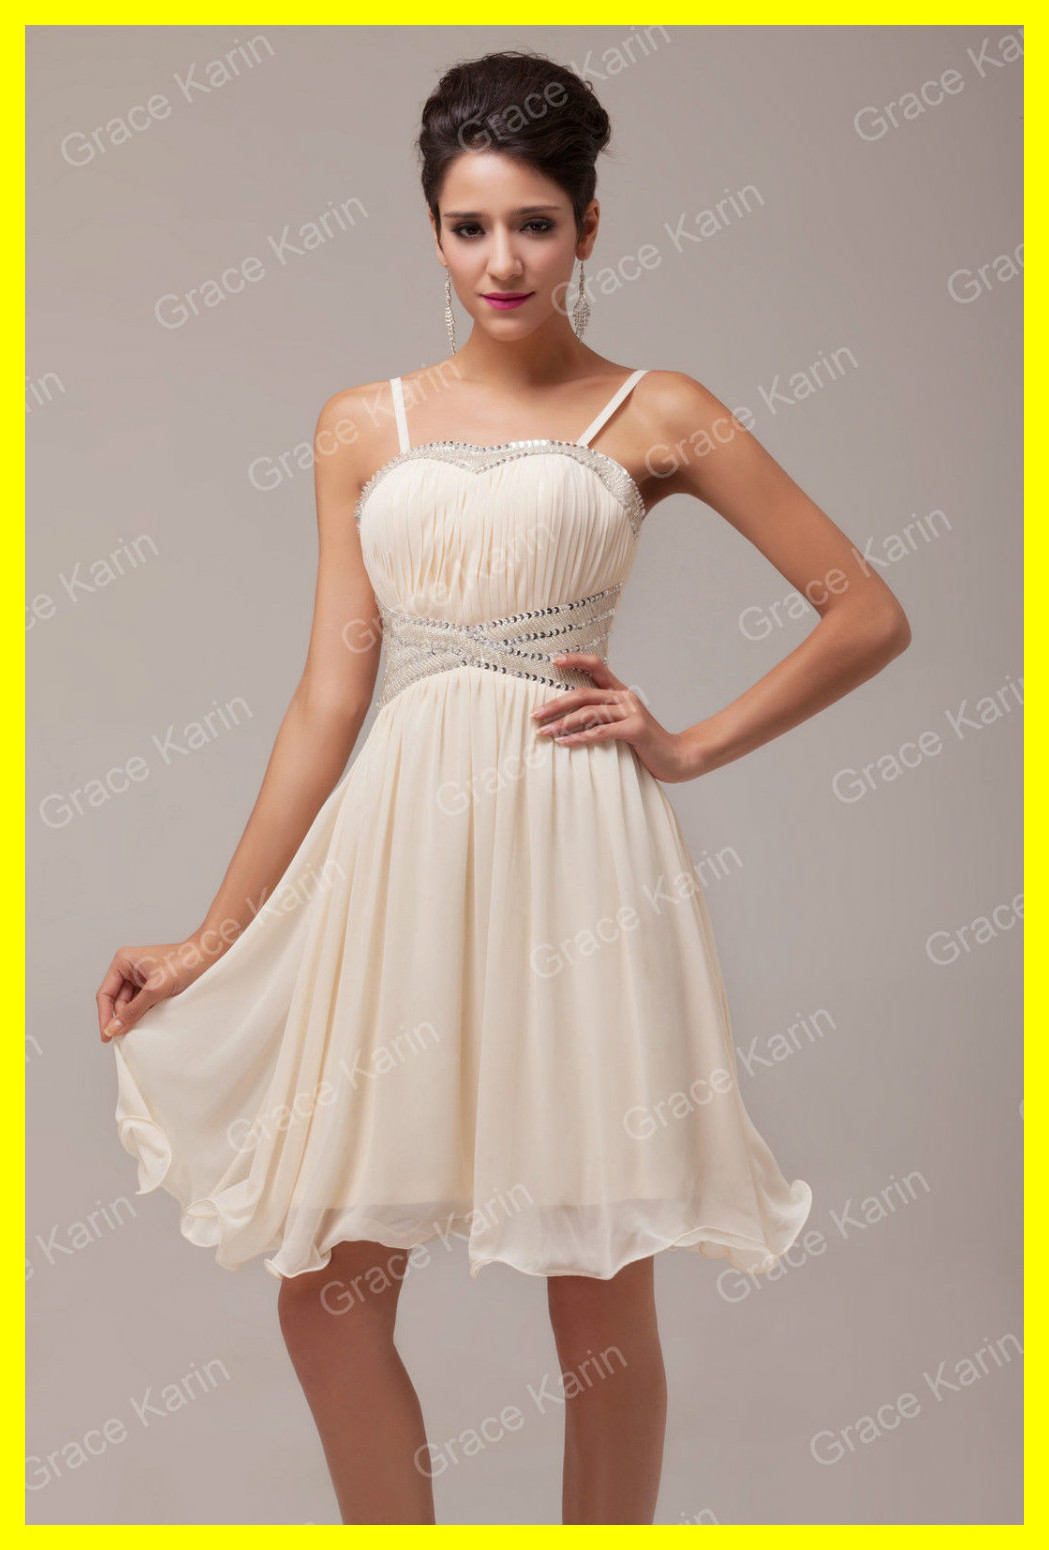 High Street Wedding Dress Shorty Dresses Simple White